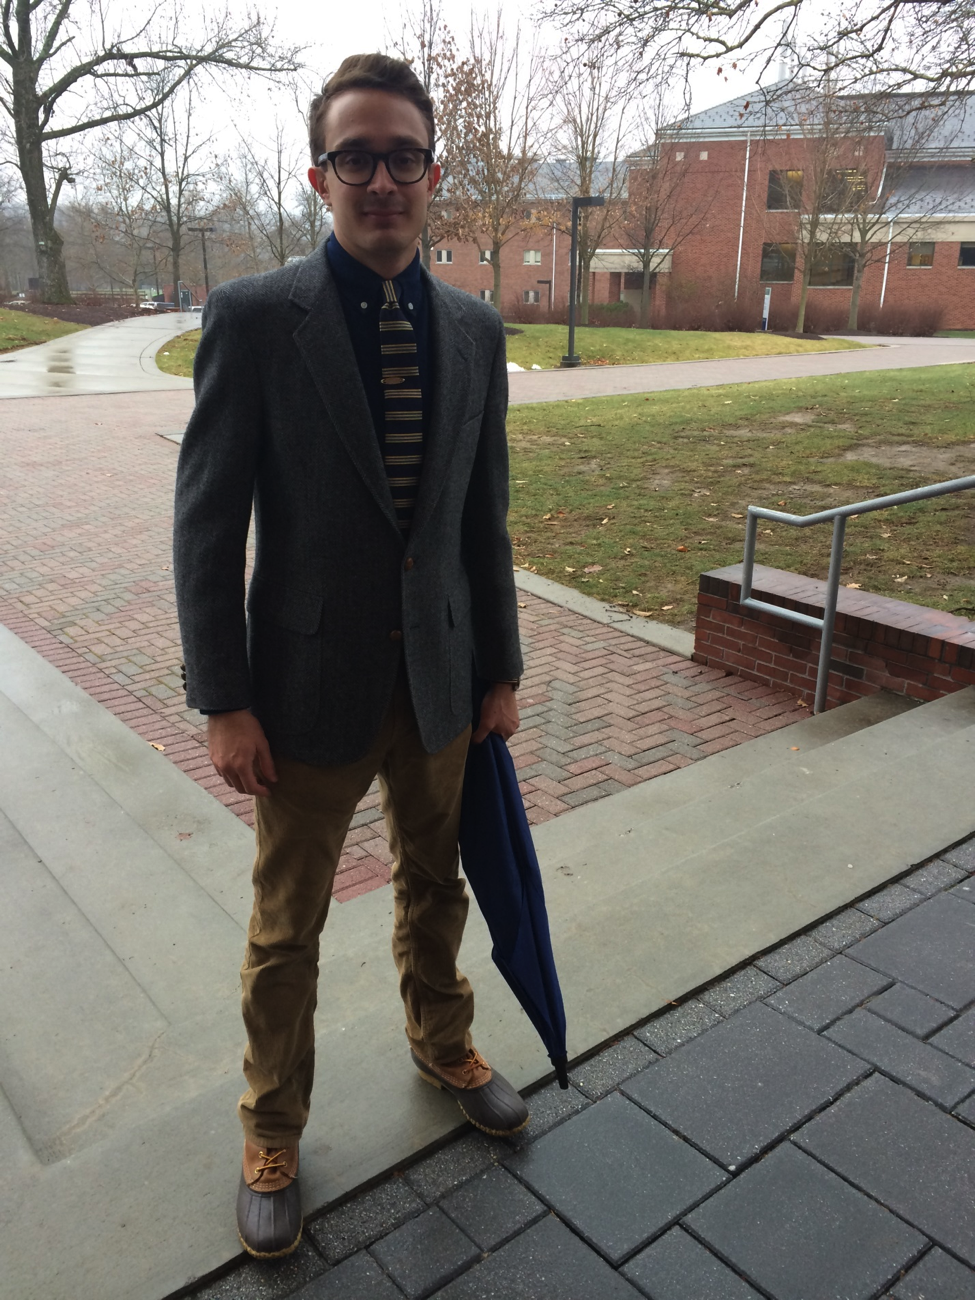 Junior Brett Levengood includes a blazer in his overall look, finding that dressing better adds confidence to his day